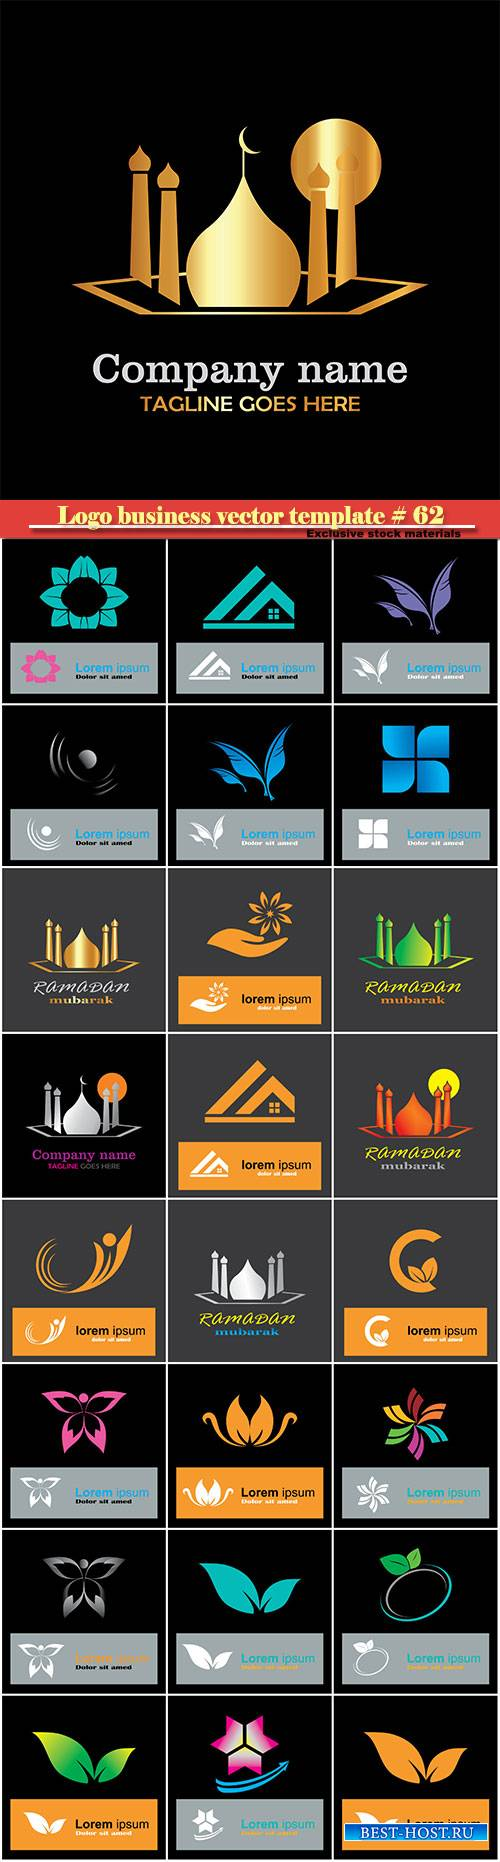 Logo business vector illustration template # 62